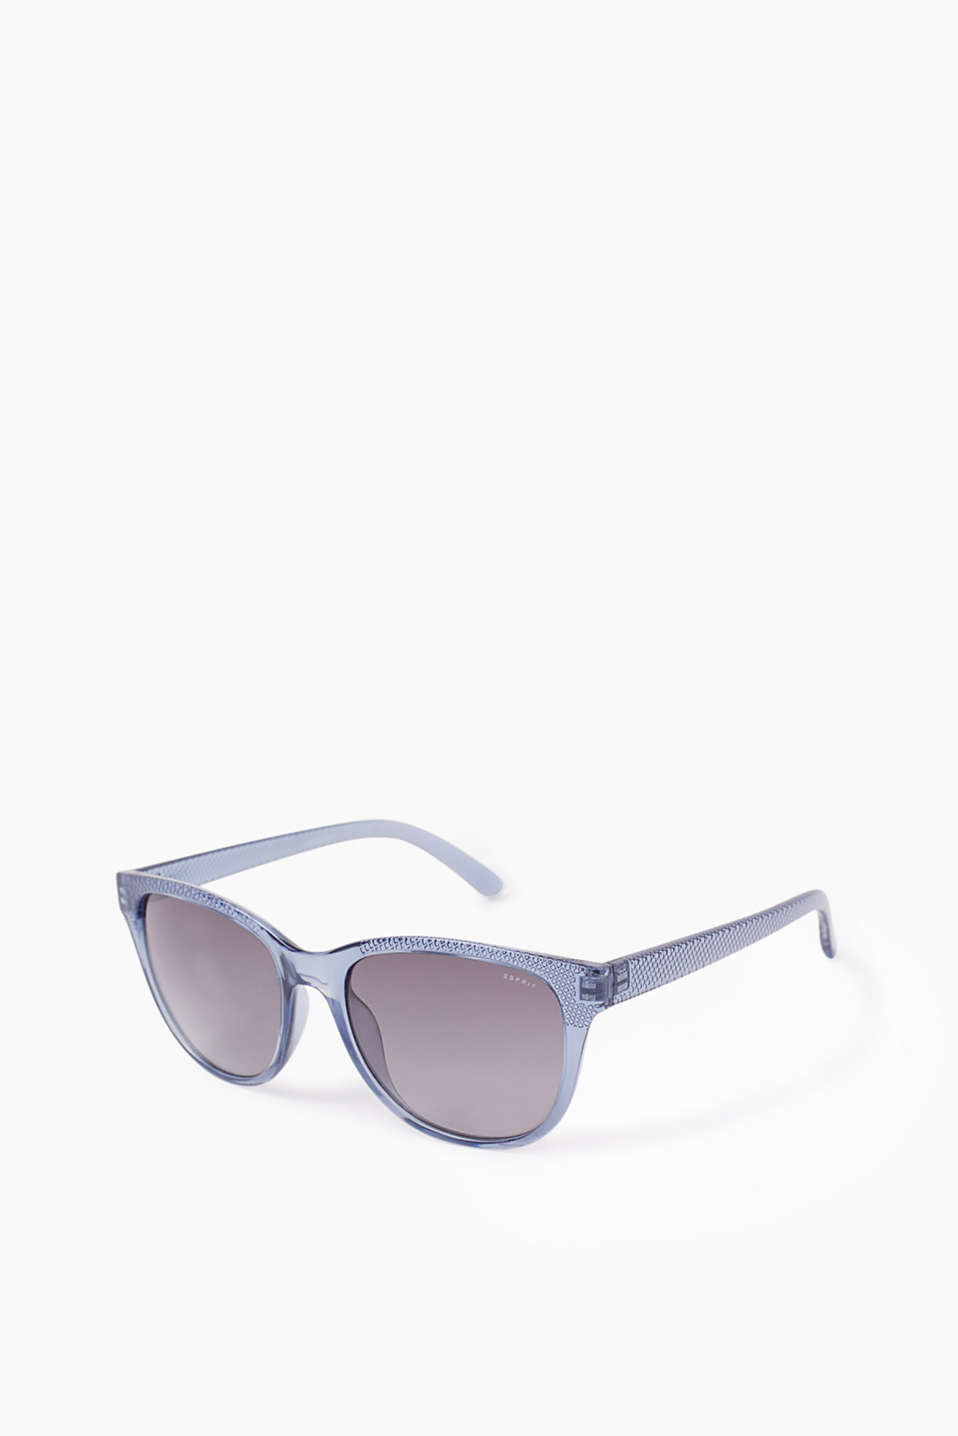 Transparent sunglasses in a cool design featuring graduated colour lenses